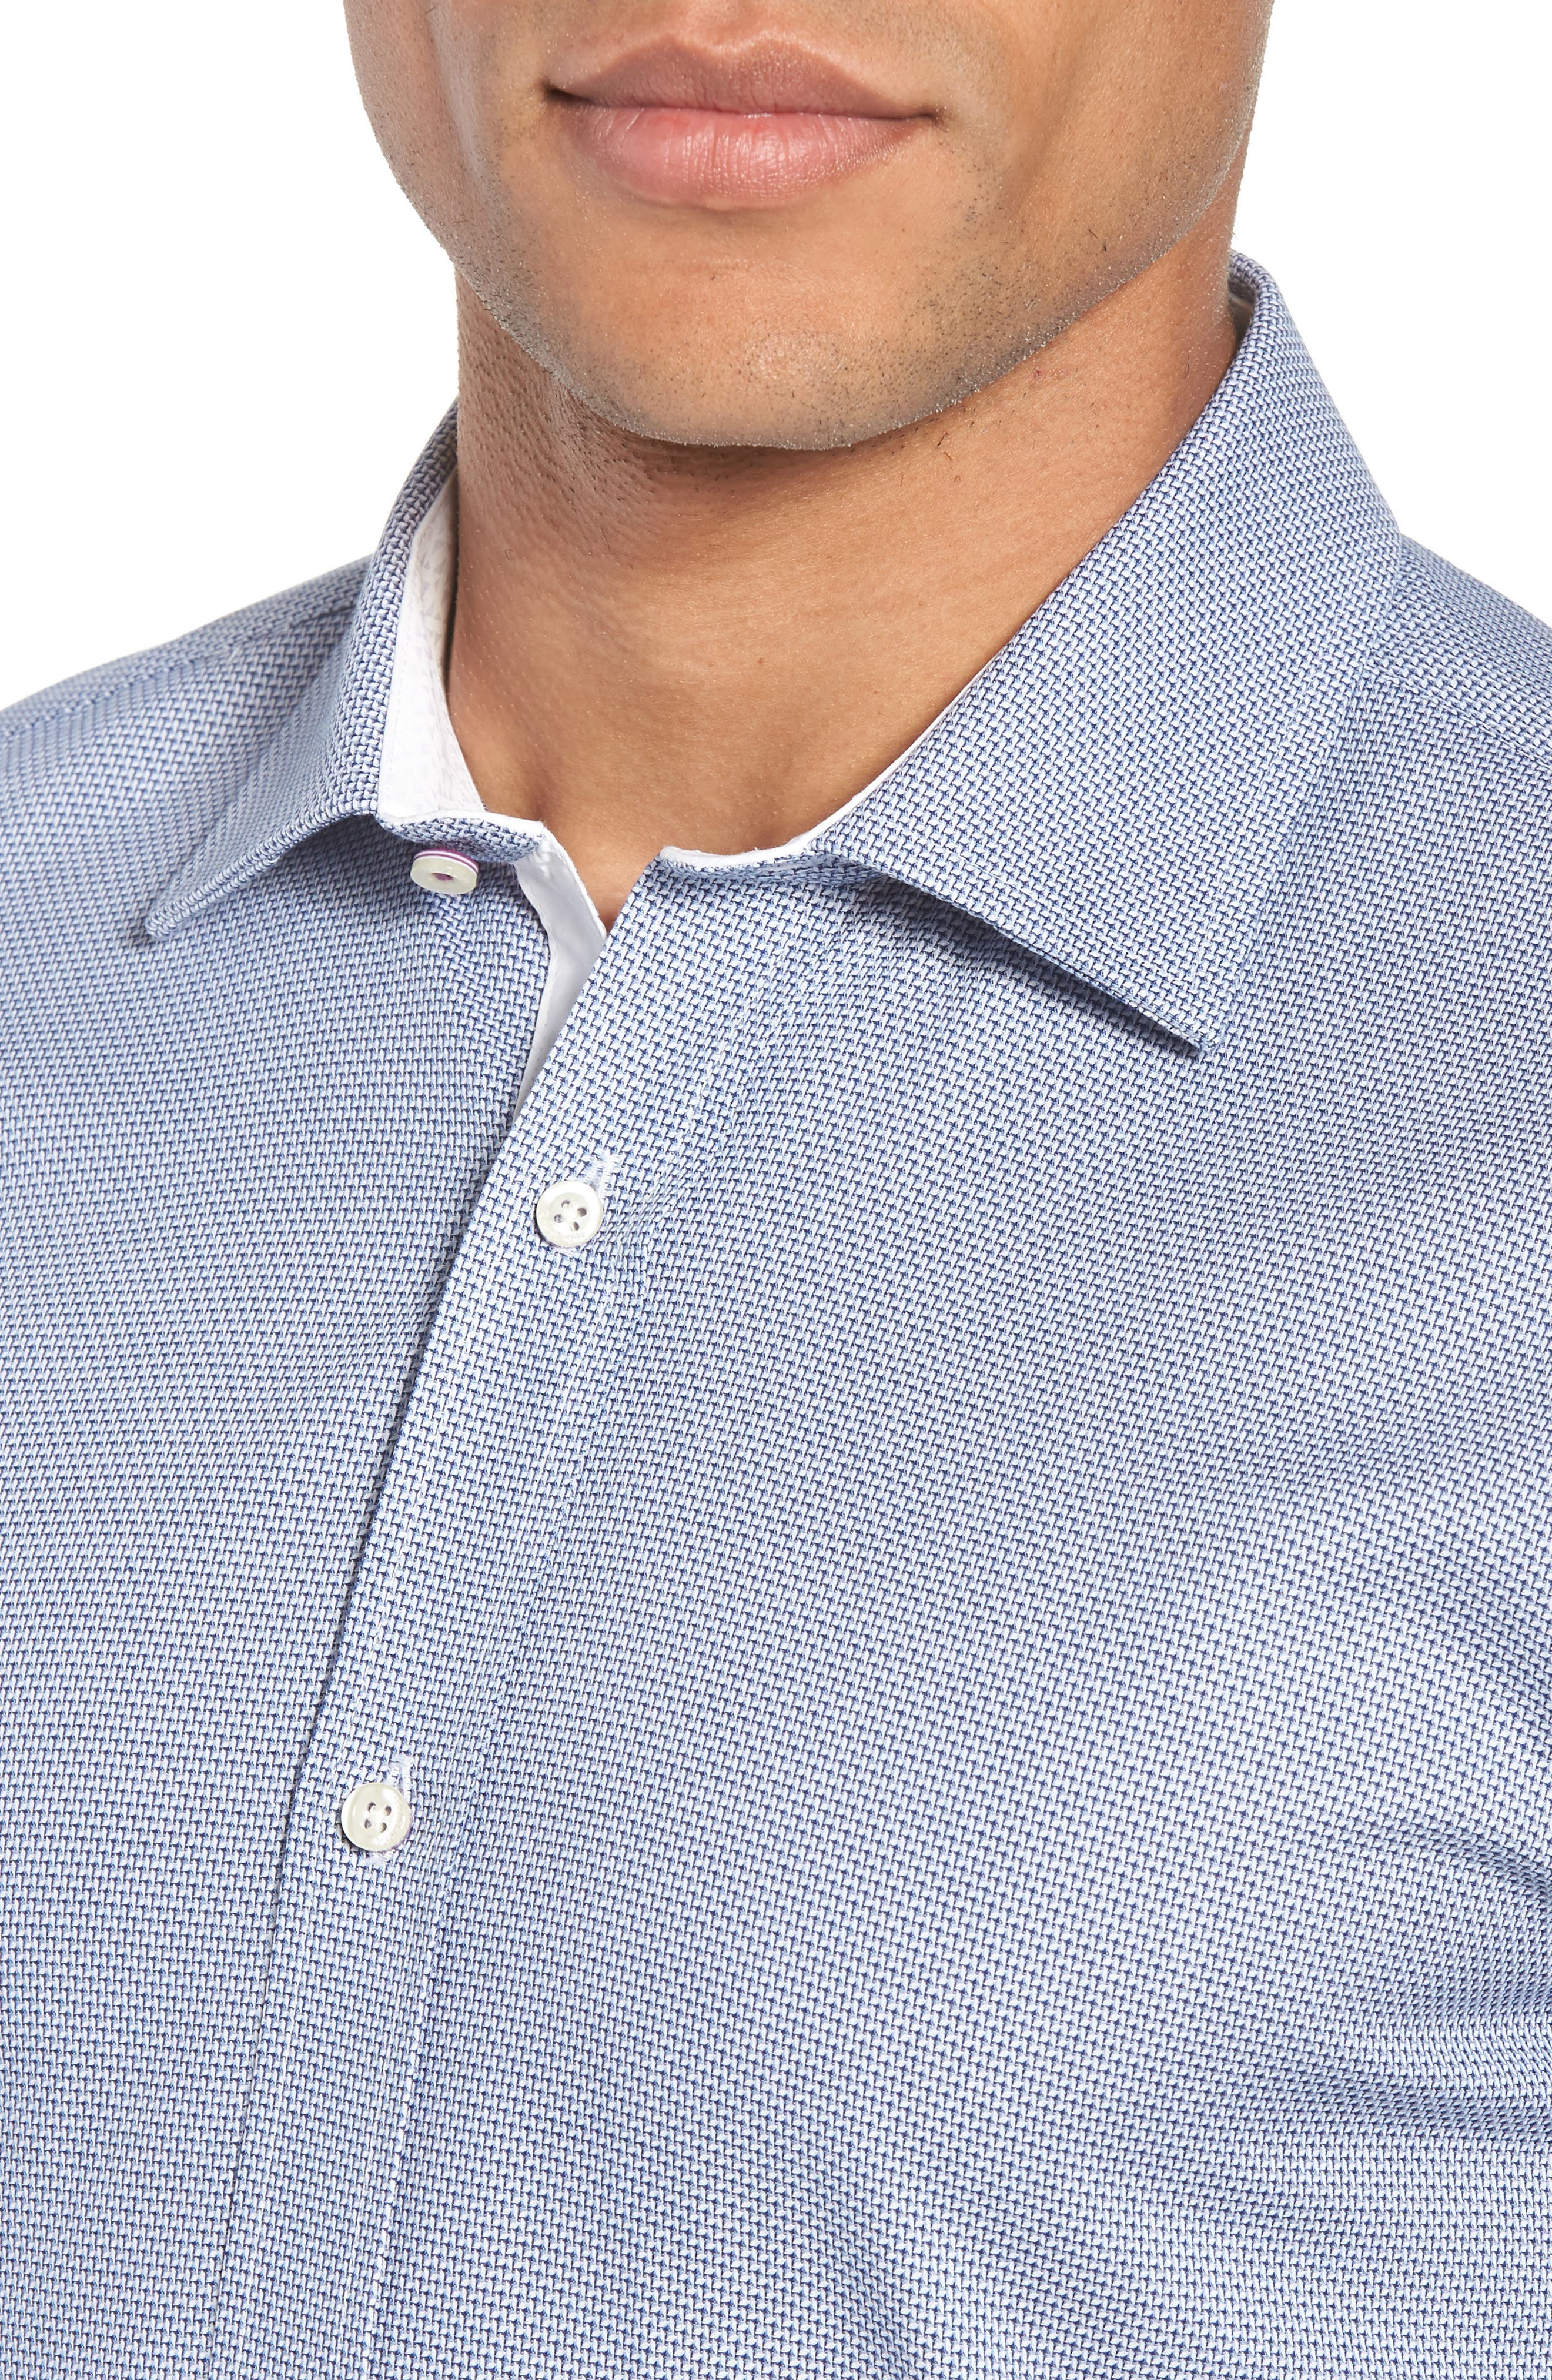 Murgese Trim Fit Geometric Dress Shirt,                             Alternate thumbnail 2, color,                             030